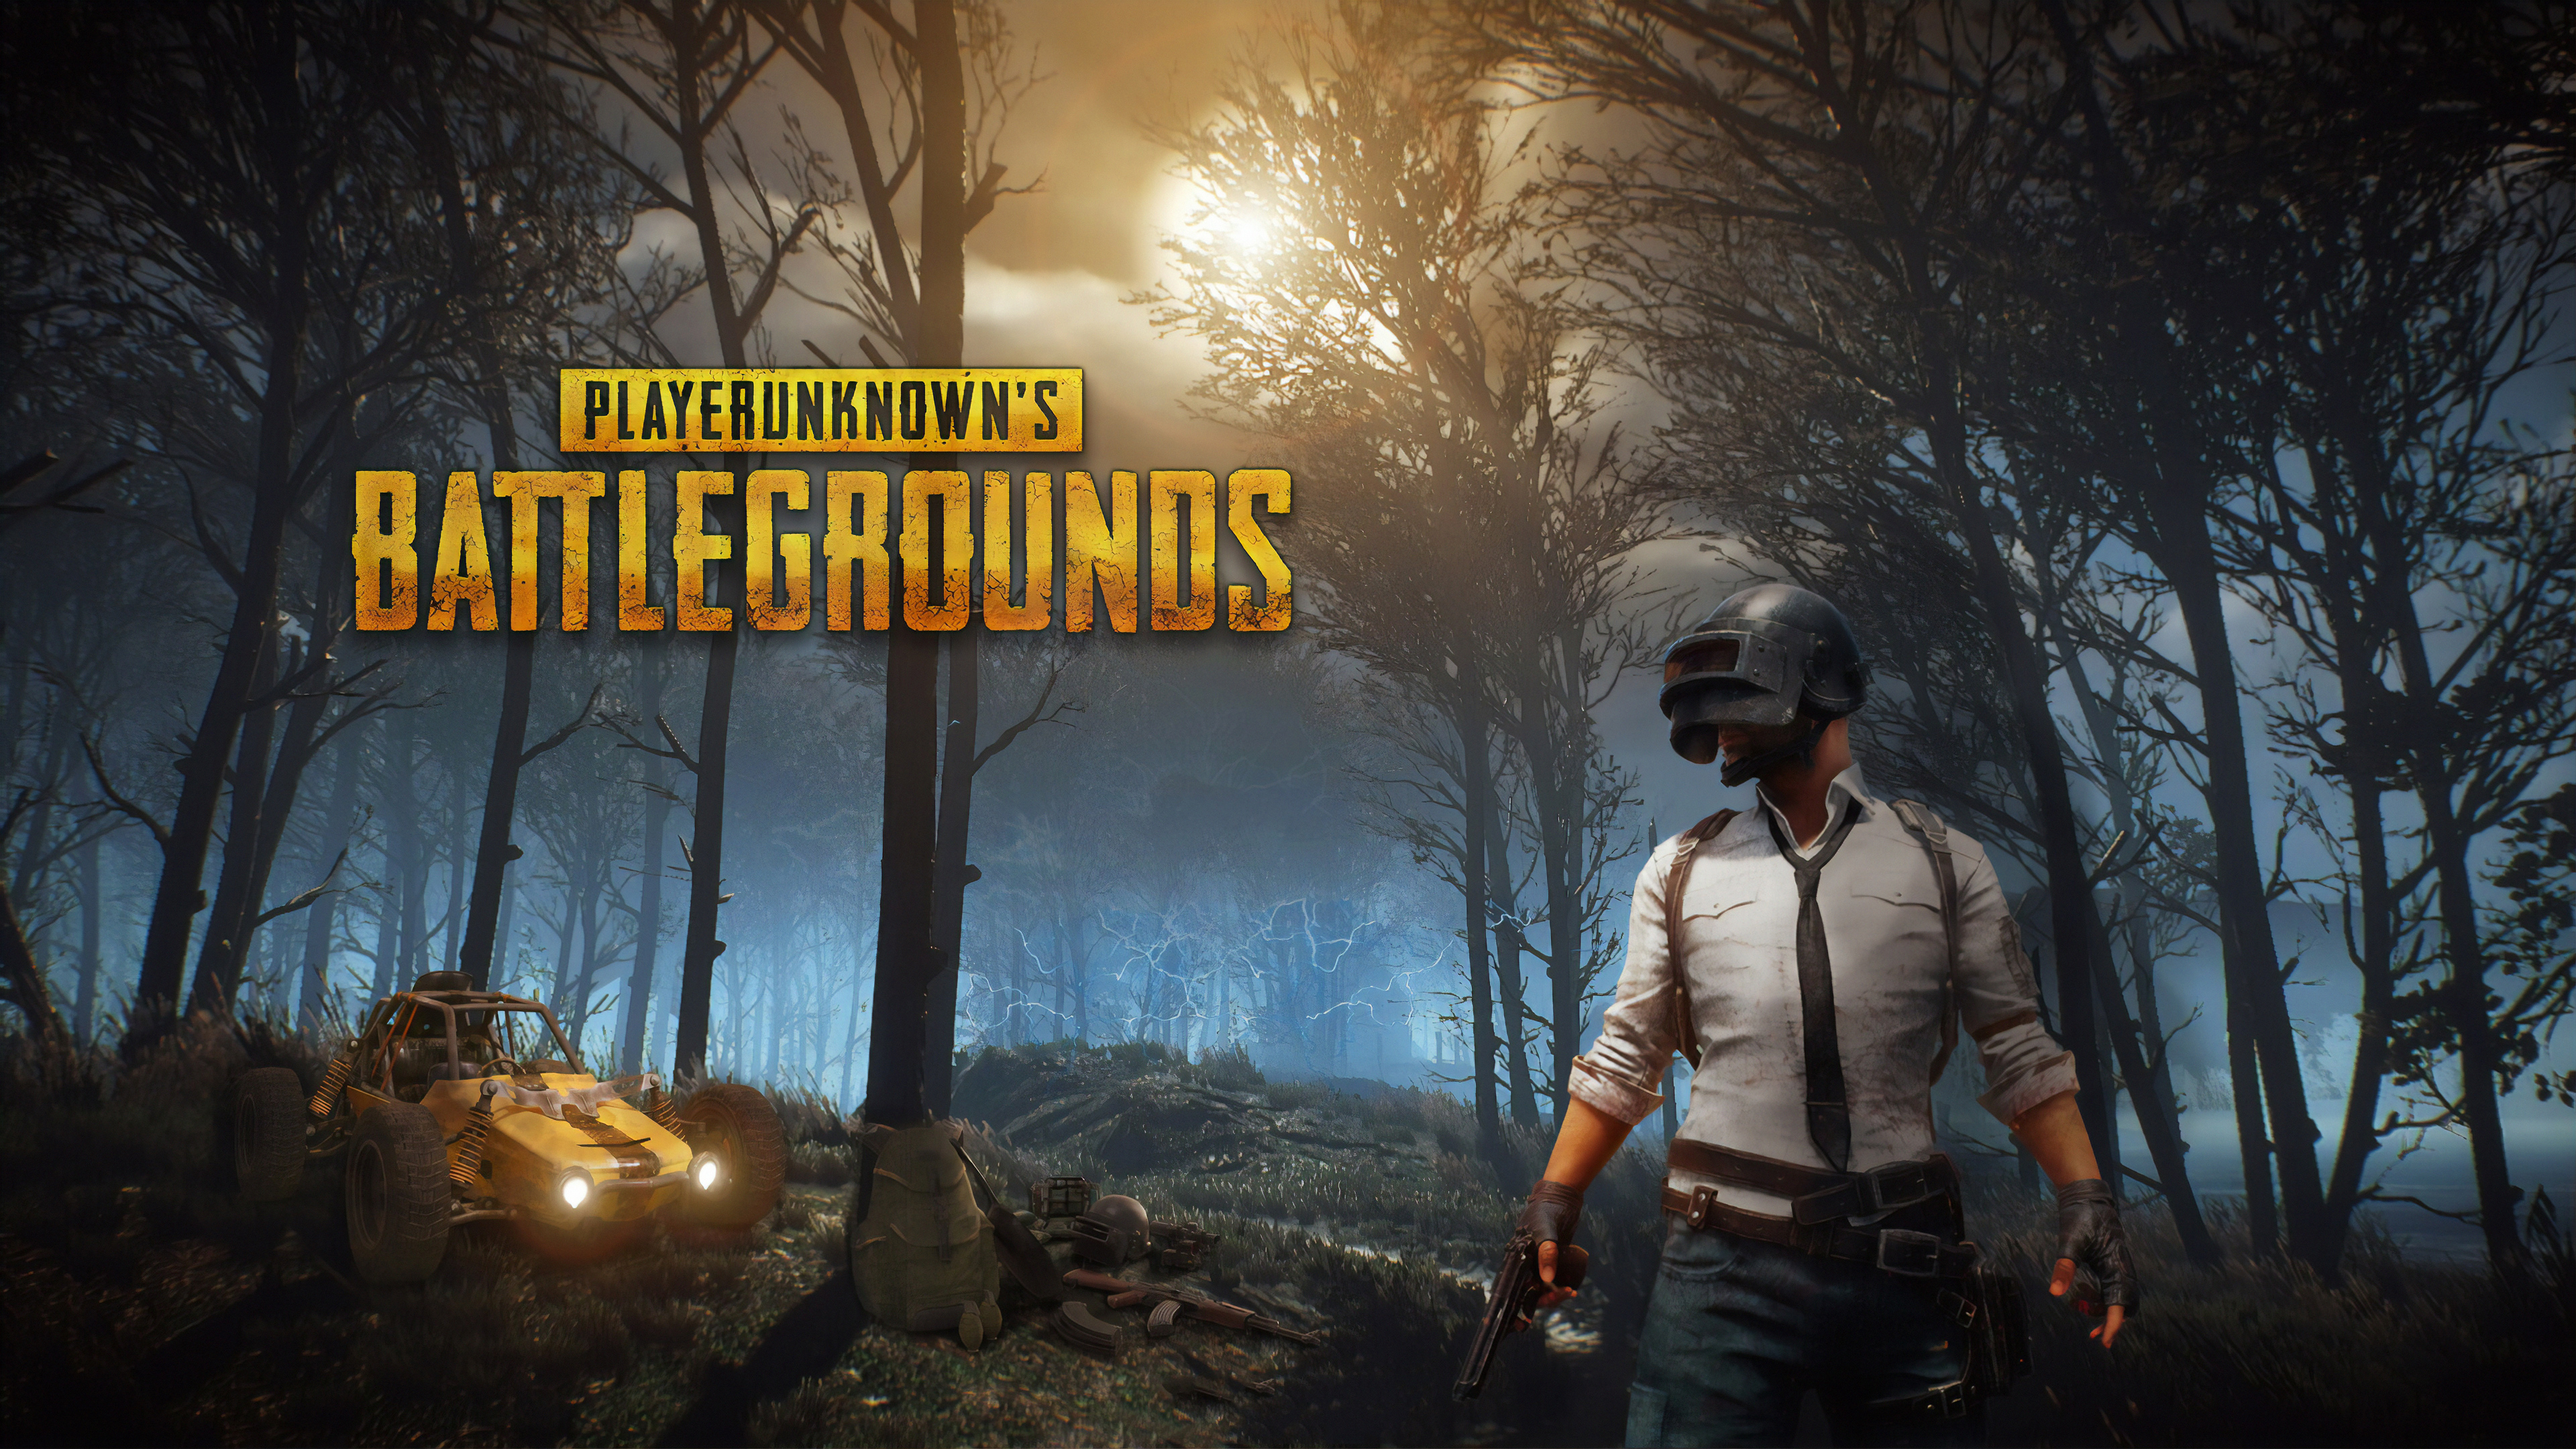 Pubg 2019 New 4k, HD Games, 4k Wallpapers, Images ...